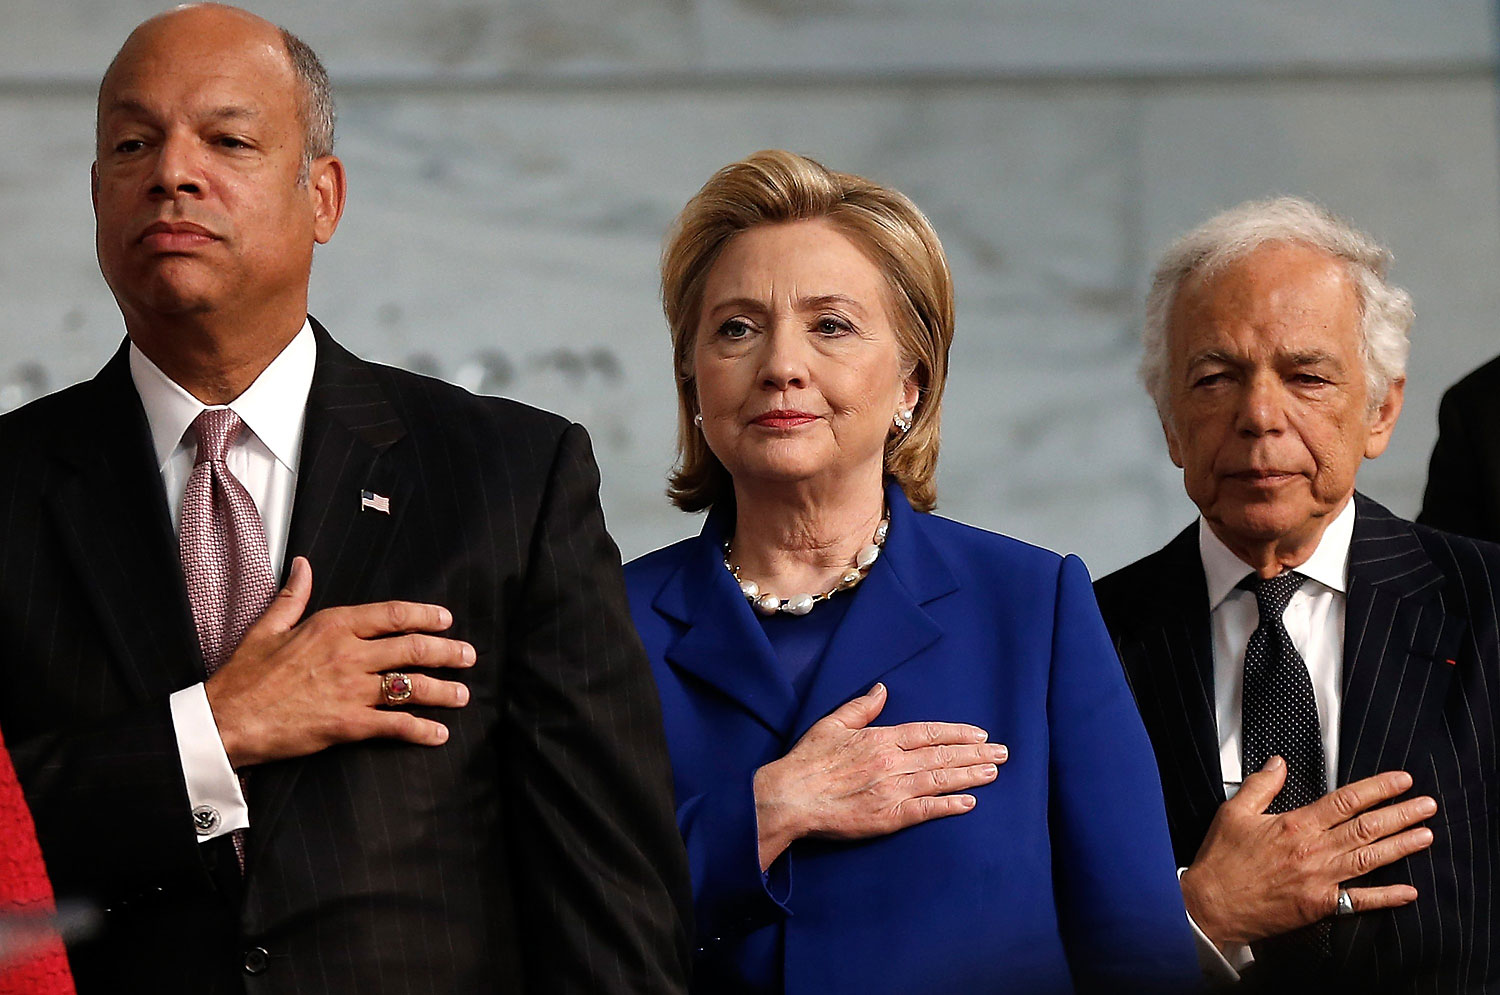 From left, U.S. Secretary of Homeland Security Jeh Johnson, Former U.S. Secretary of State Hillary Clinton and designer Ralph Lauren say the Pledge of Allegiance during a naturalization ceremony at the National Museum of American History June 17, 2014 in Washington, DC.